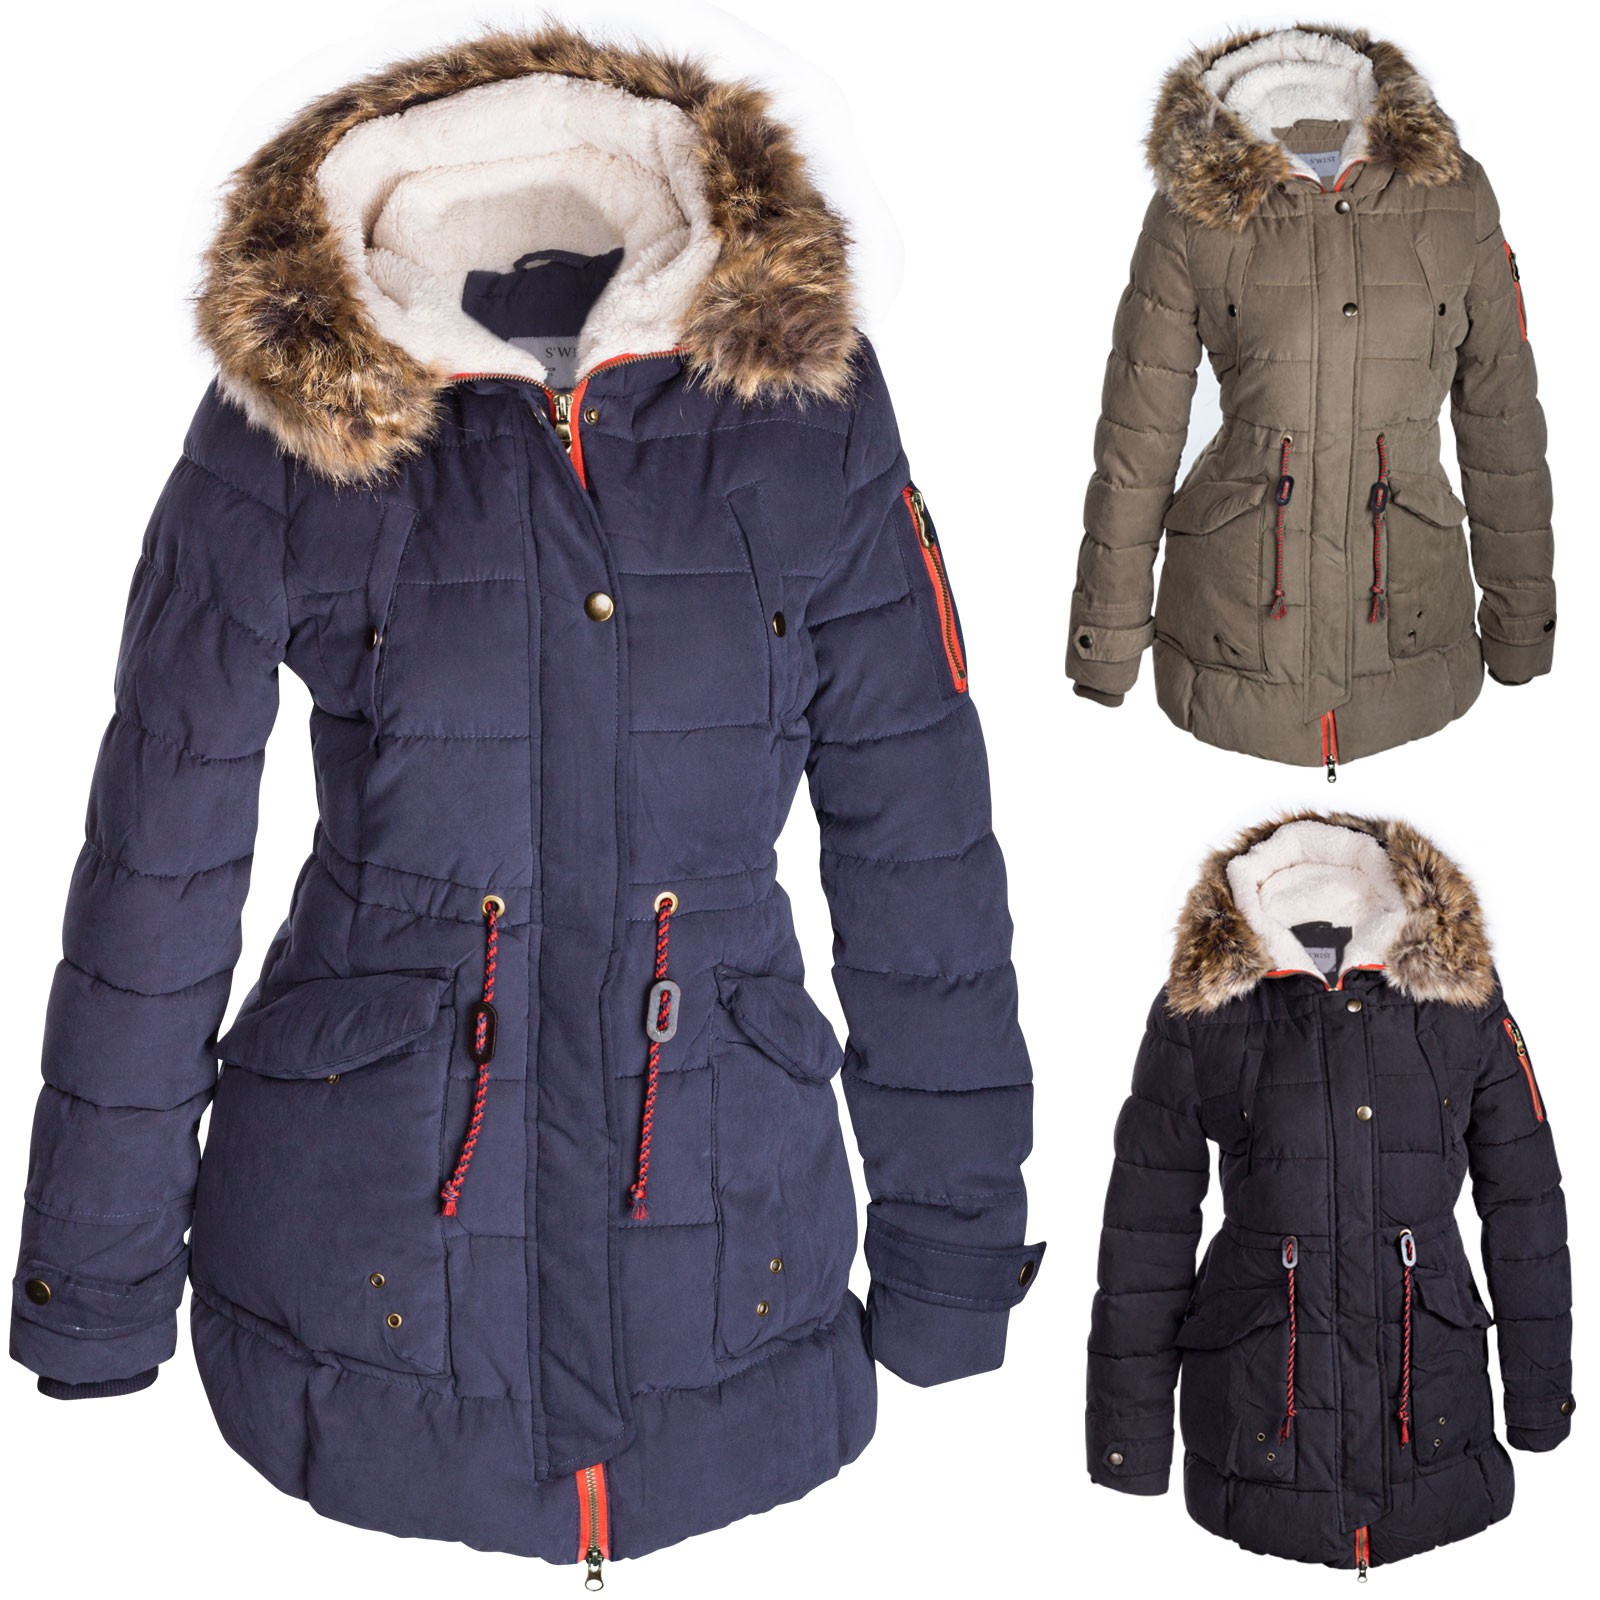 Winterjacken damen 48